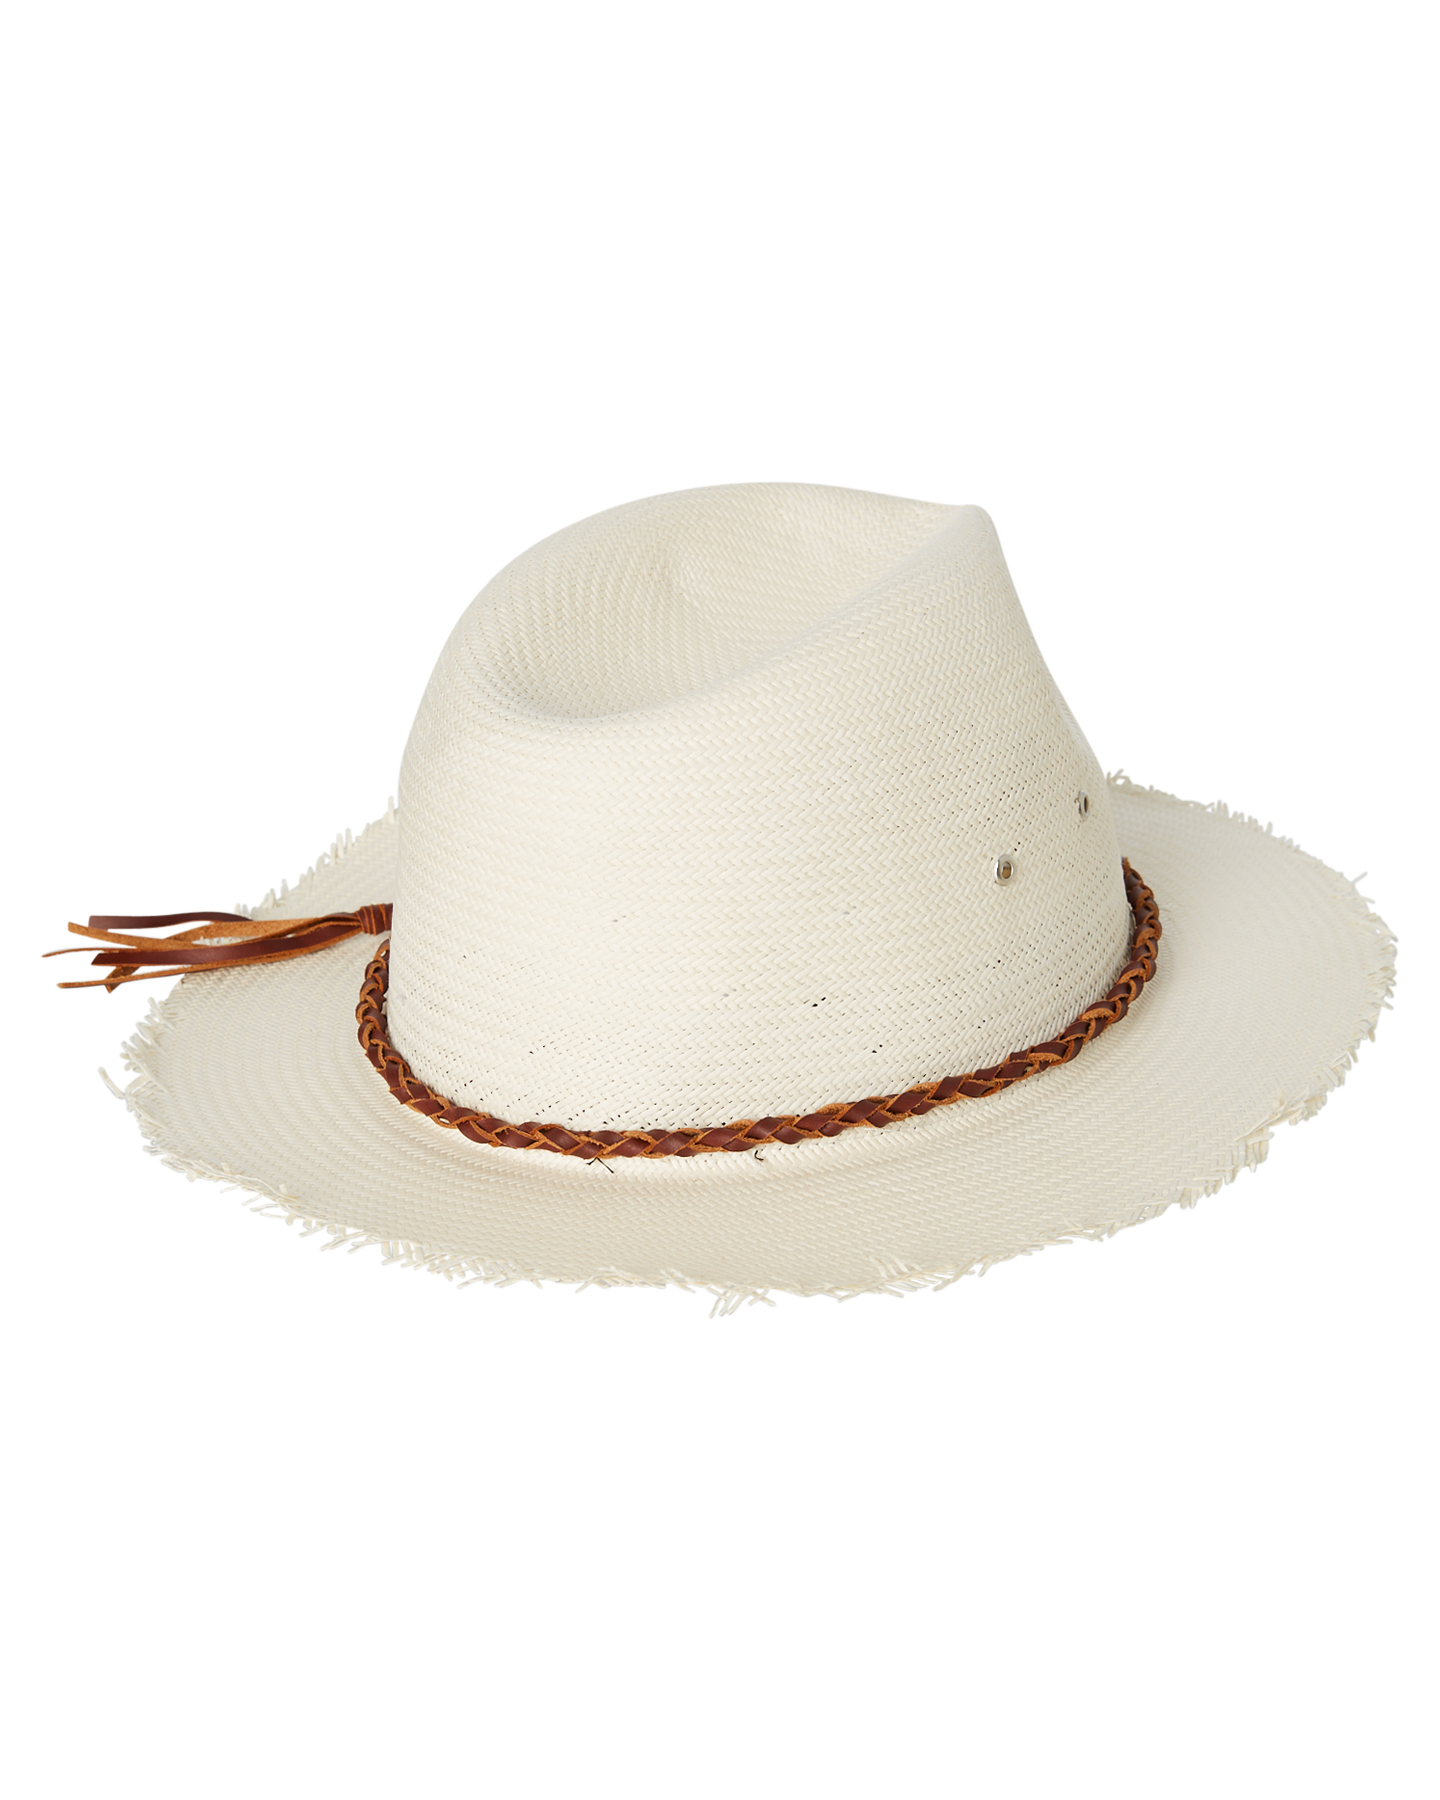 f2f675fabdf The prologue straw hat straw surfstitch JPG 1440x1800 Fallen broken street  hat